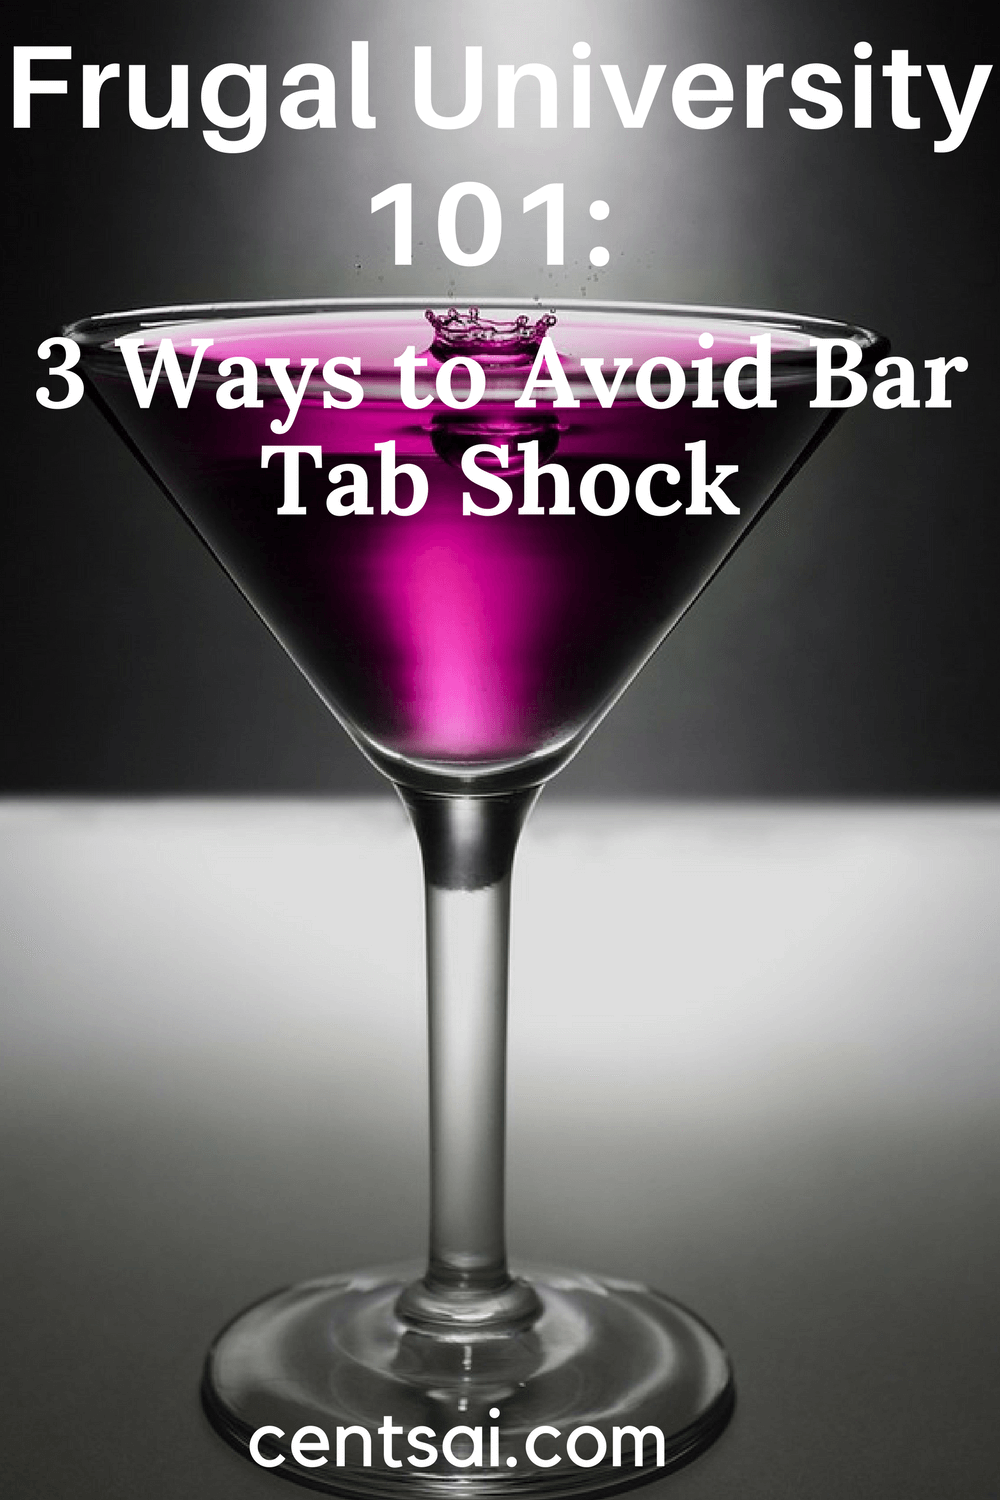 Frugal University 101: 3 Ways to Avoid Bar Tab Shock